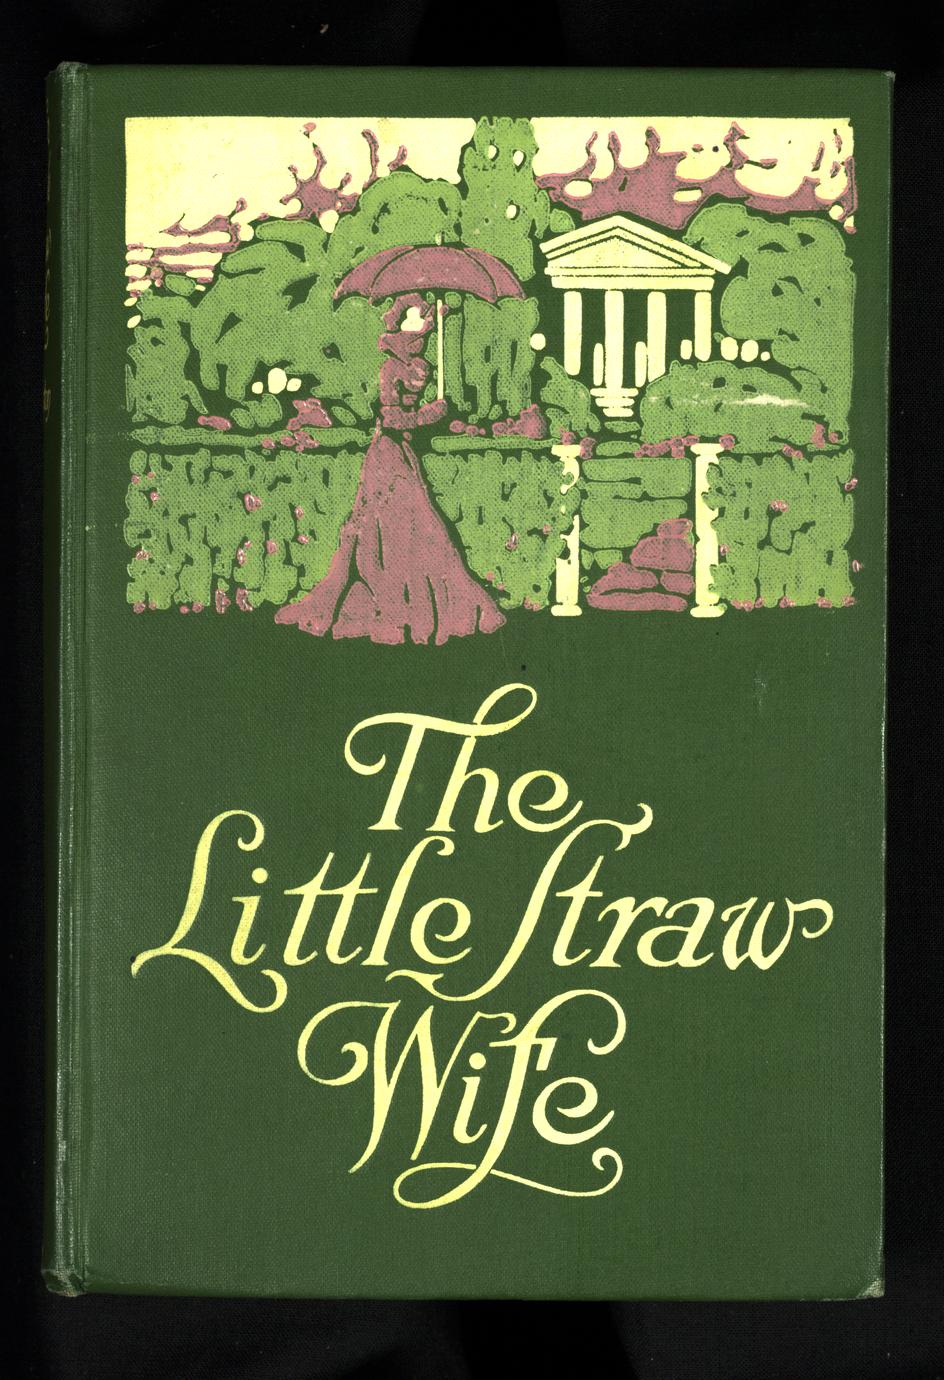 The little straw wife (1 of 2)